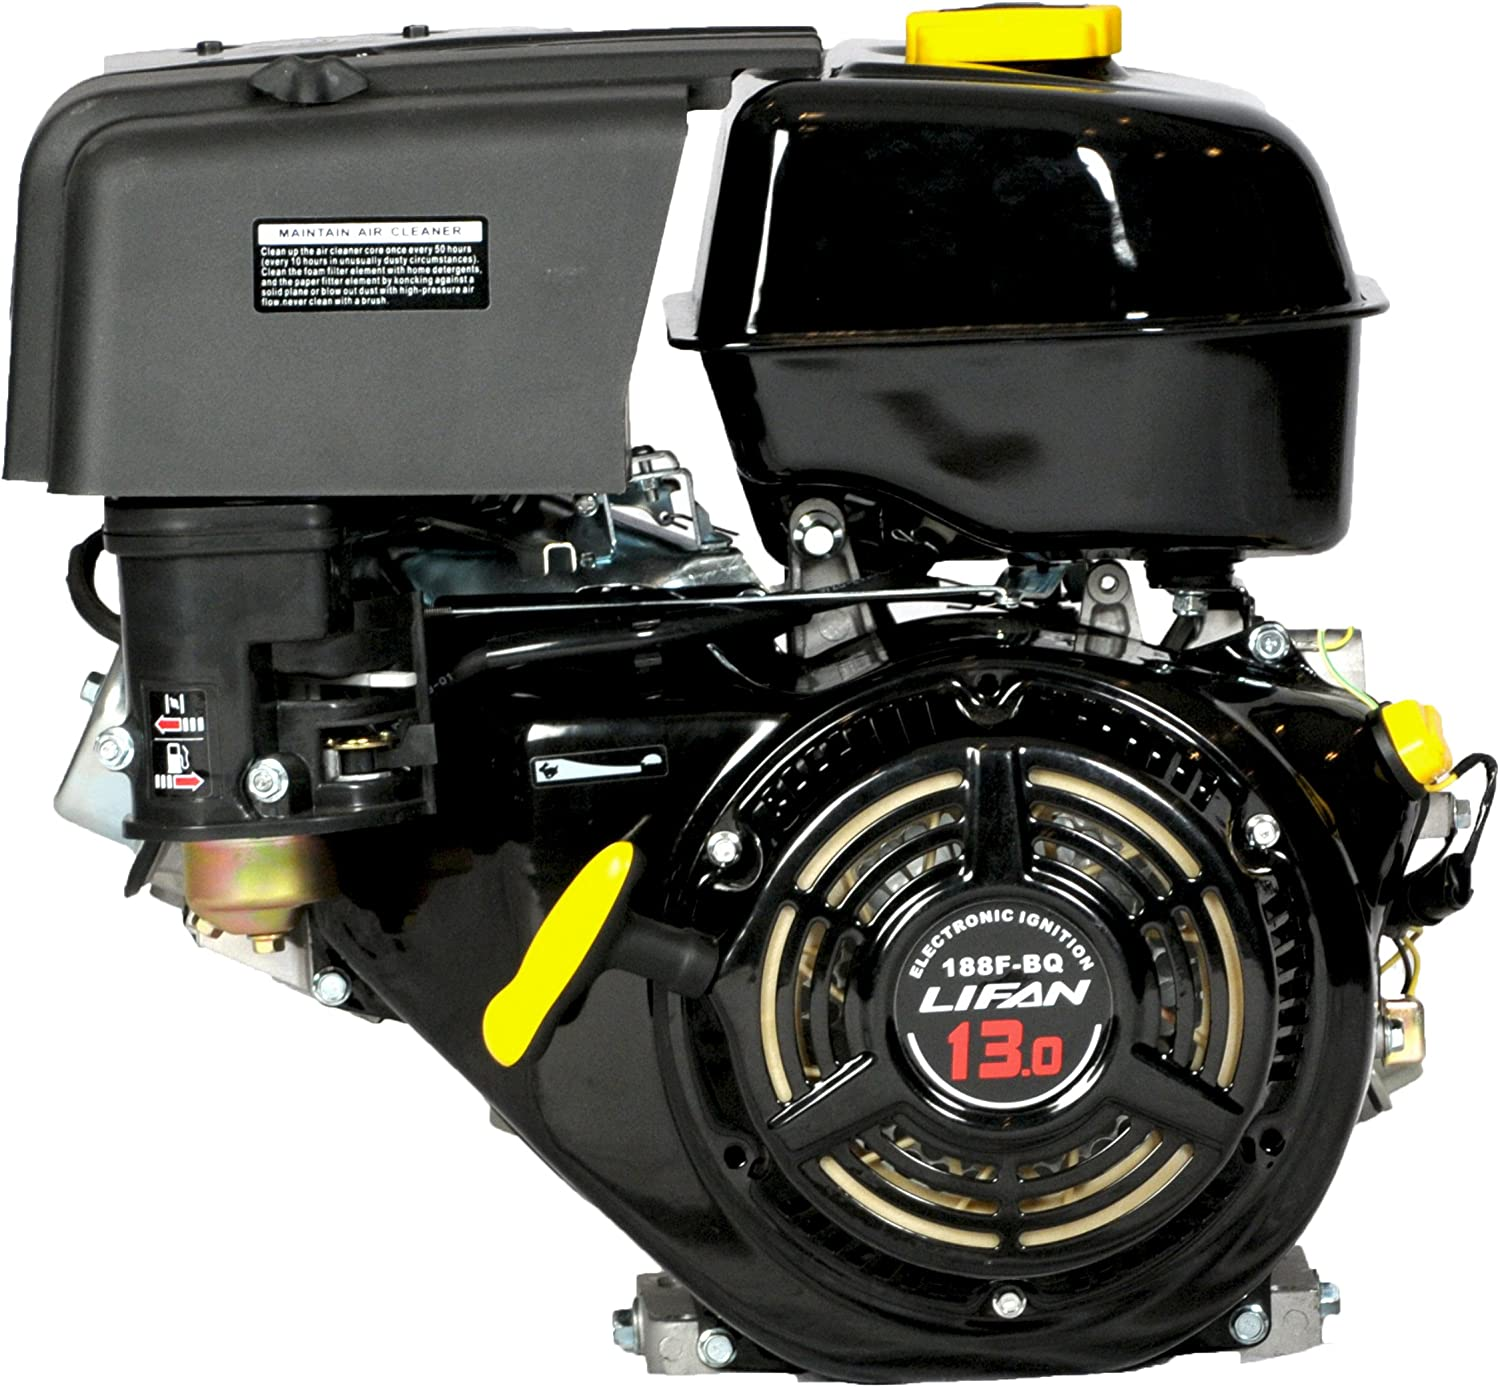 Amazon.com: Lifan LF188F-BDQ 13 HP 389cc 4-Stroke OHV Industrial Grade Gas  Engine with Electric Start and Universal Mounting Pattern: Garden & OutdoorAmazon.com